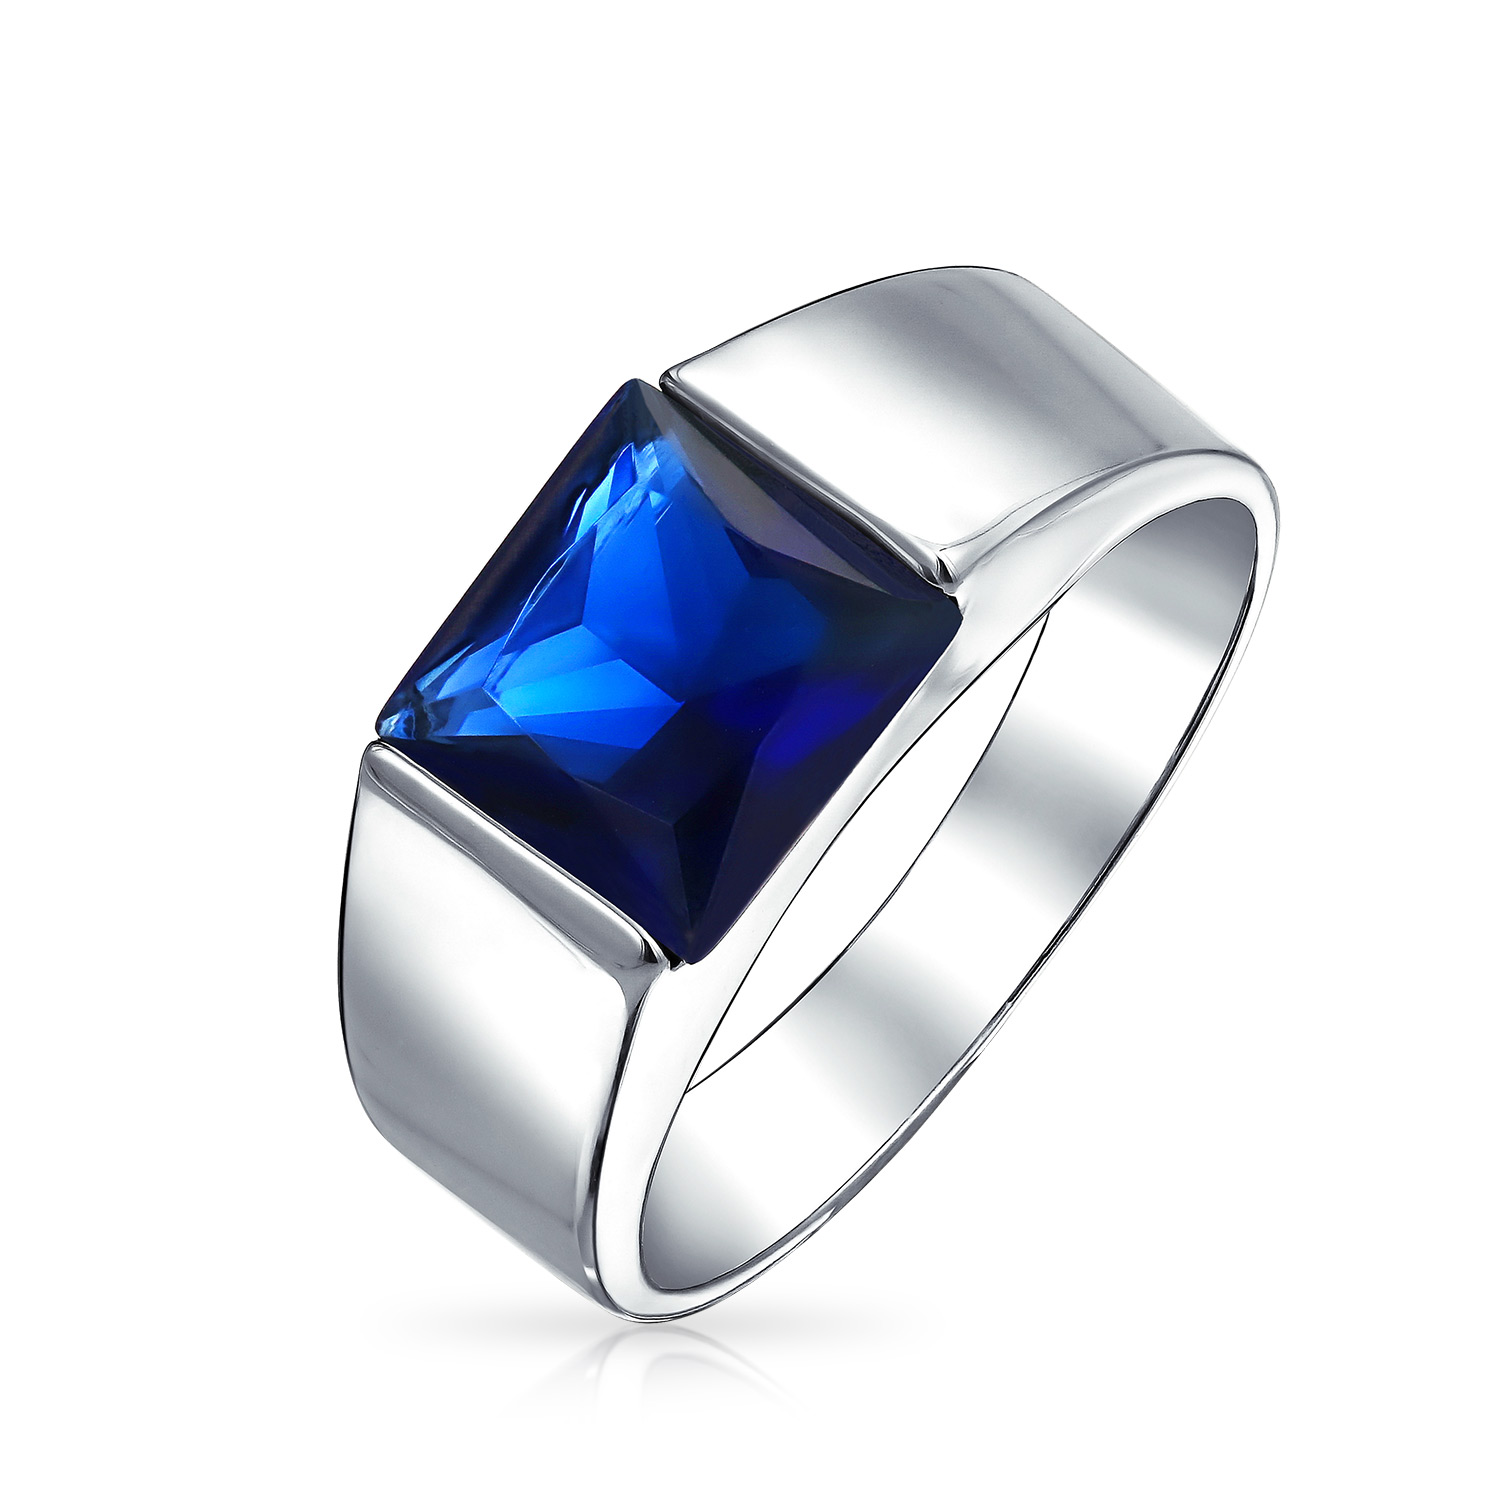 It is an image of 43CT Princess Cut Square Solitaire Simulated Blue Sapphire AAA CZ